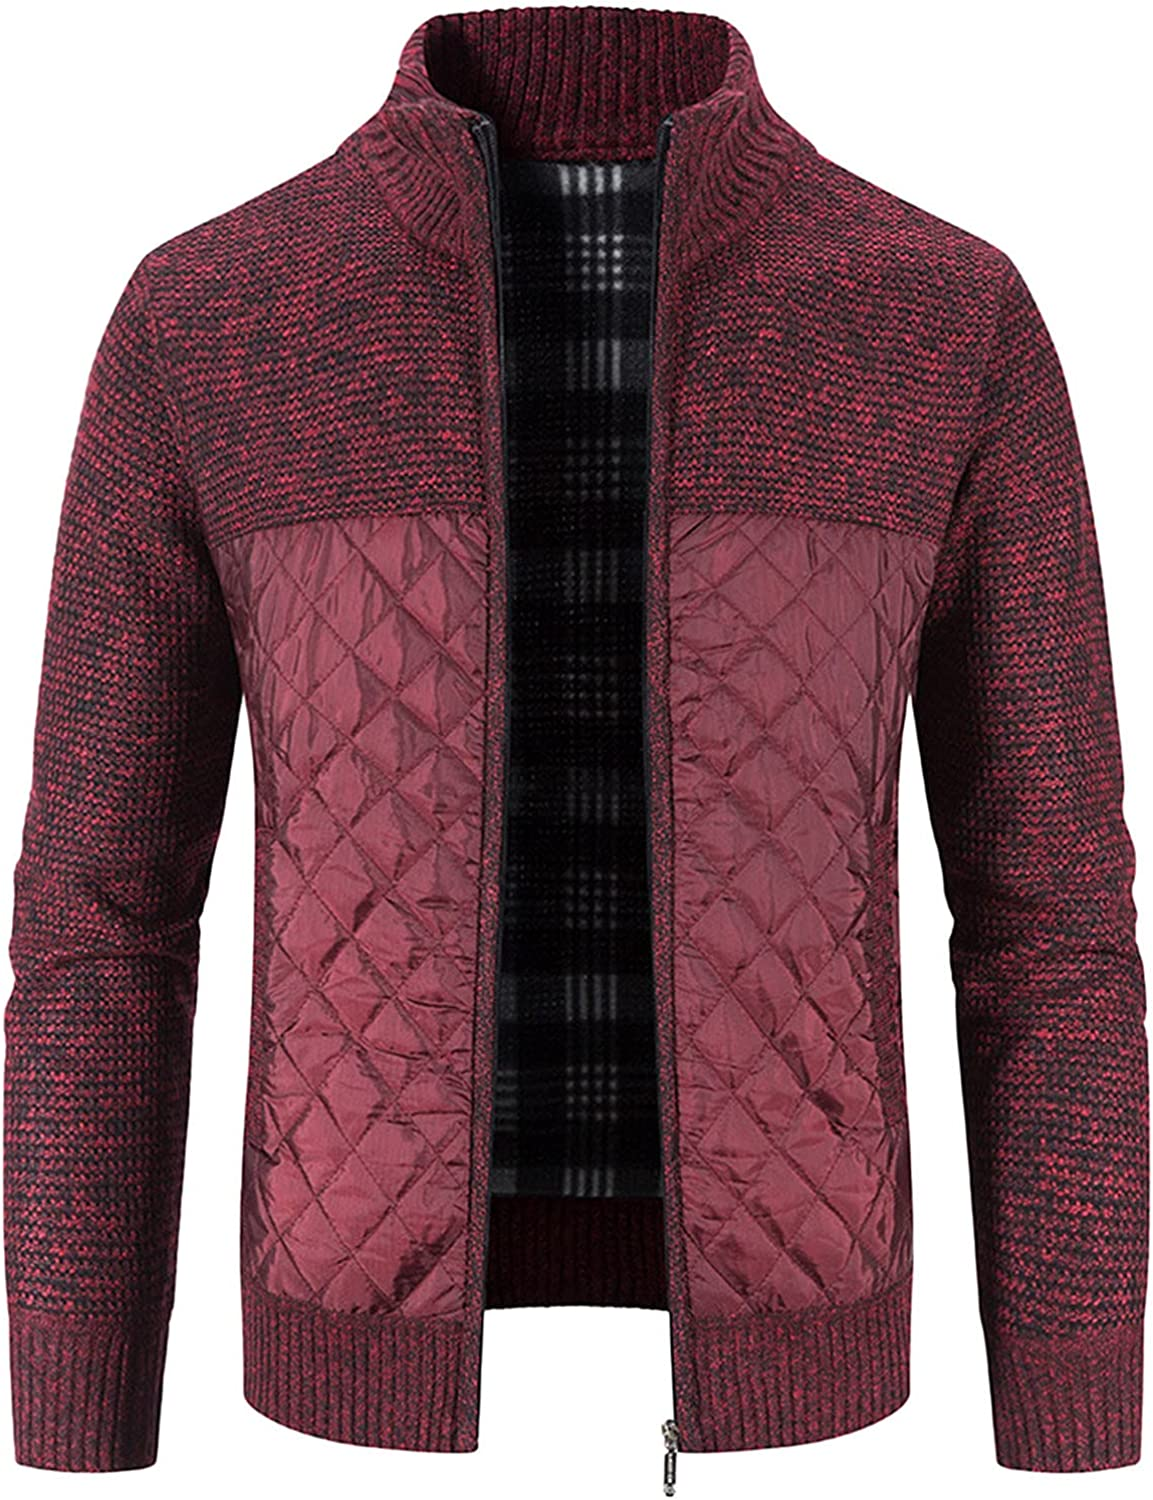 Men's Winter Cotton-Padded Cardigan Coat Jacket Knitted with Vertical Collar Coat Oversized 2021